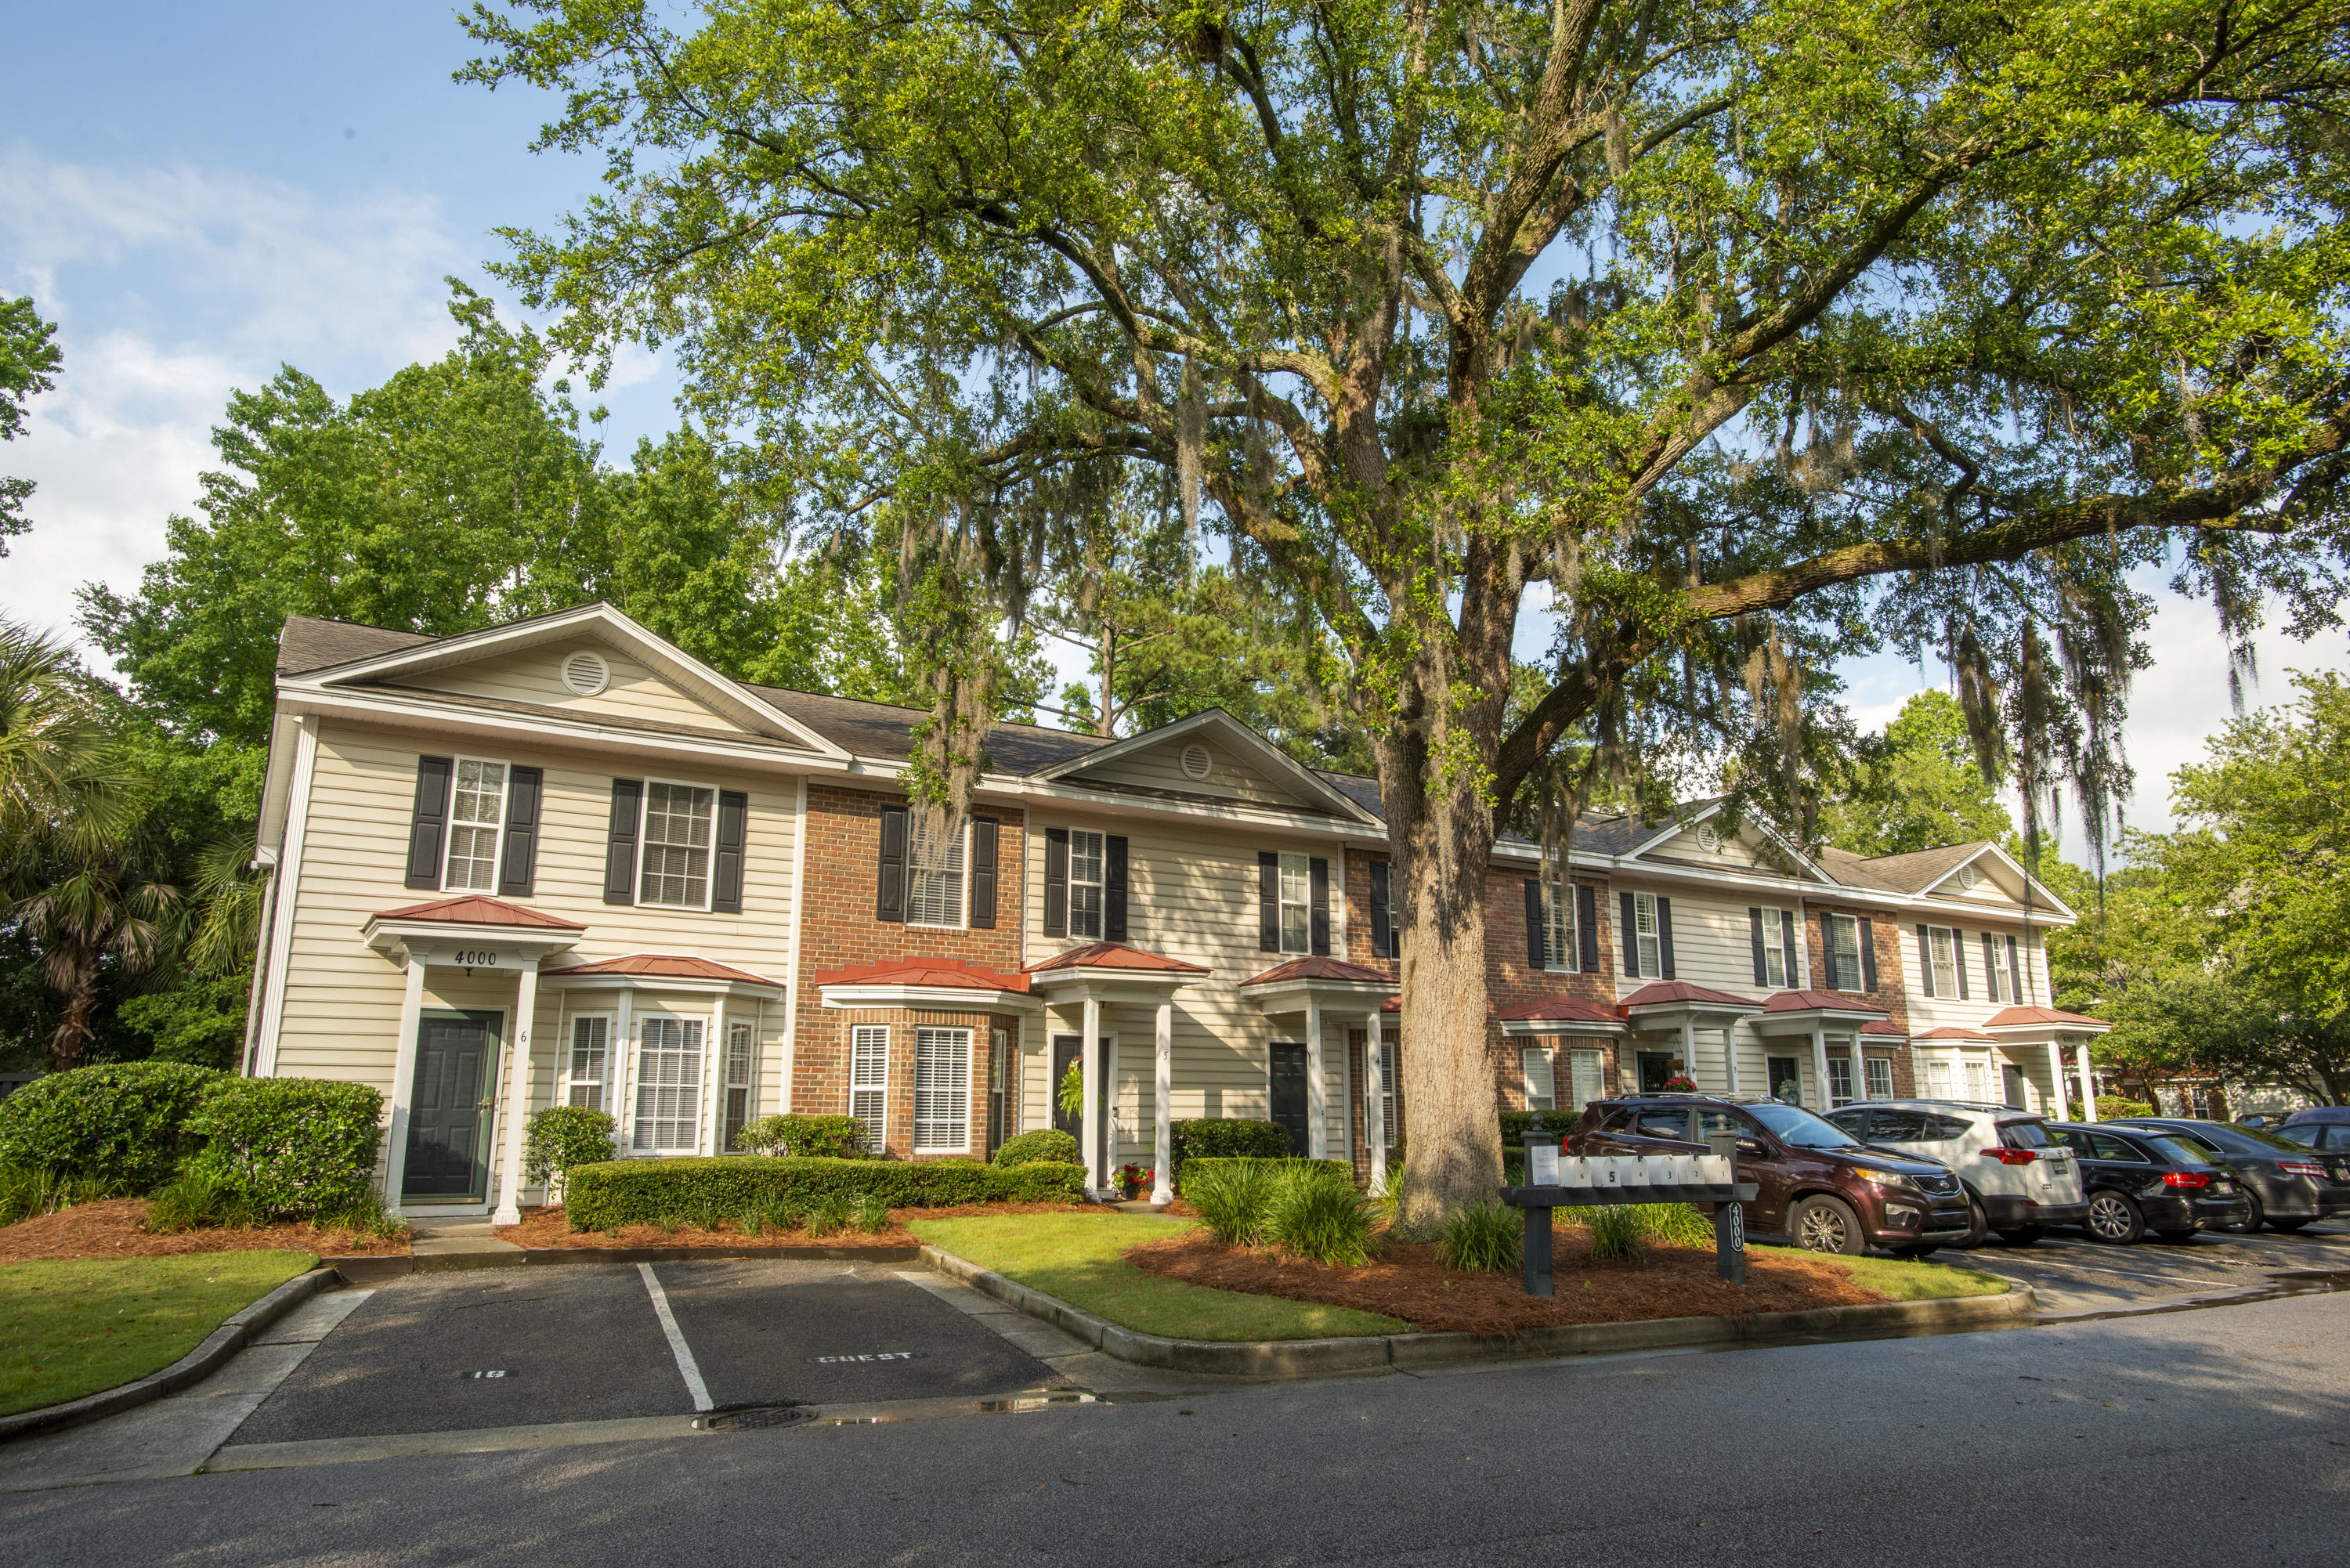 Radcliffe Place Homes For Sale - 4000 Radcliffe Place, Charleston, SC - 19